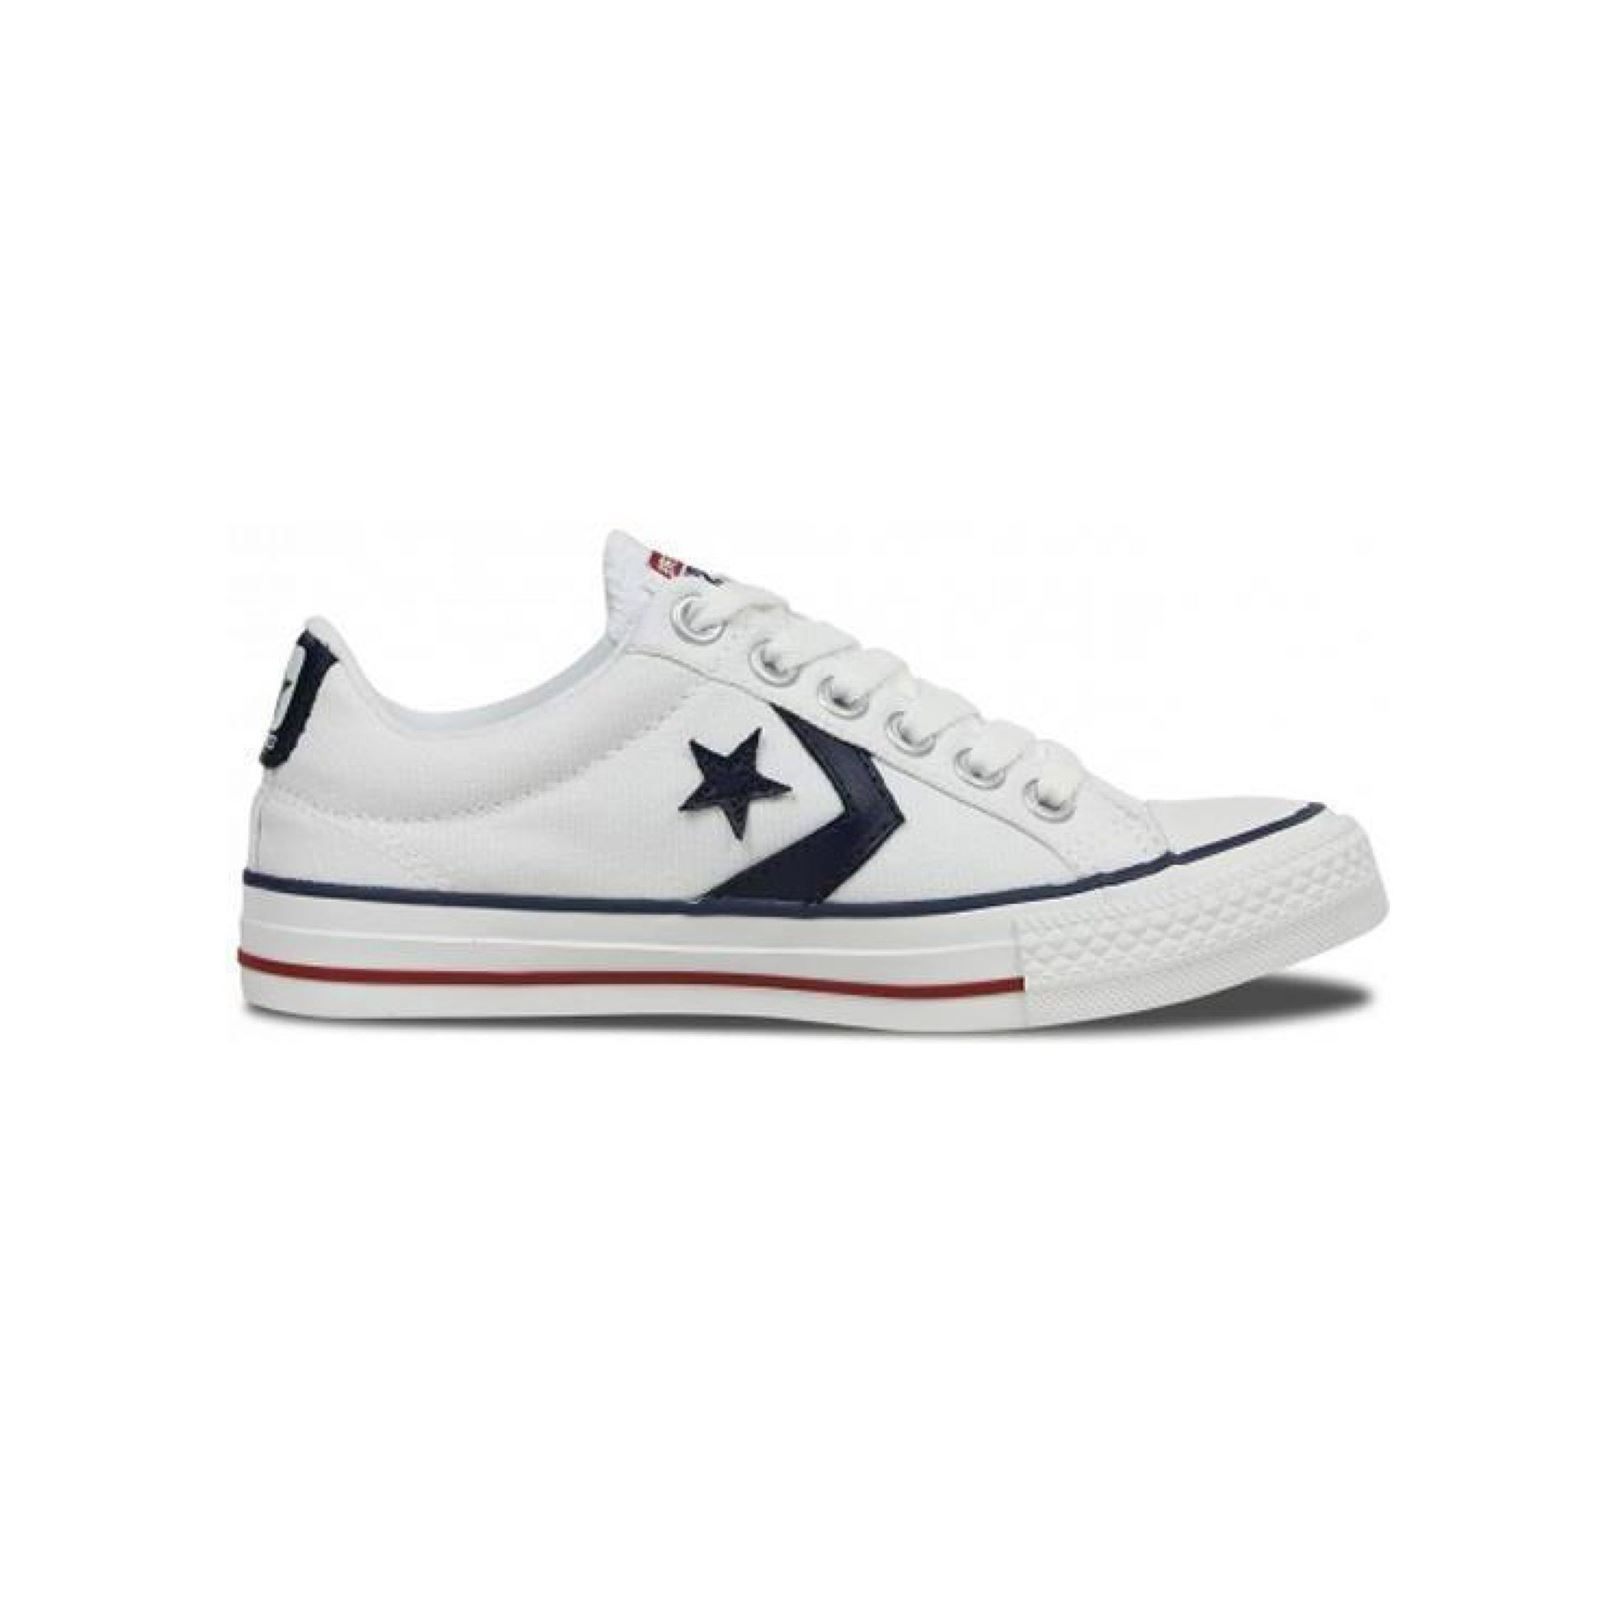 Converse Star Player OX Scarpe da tennis sneakers bianco